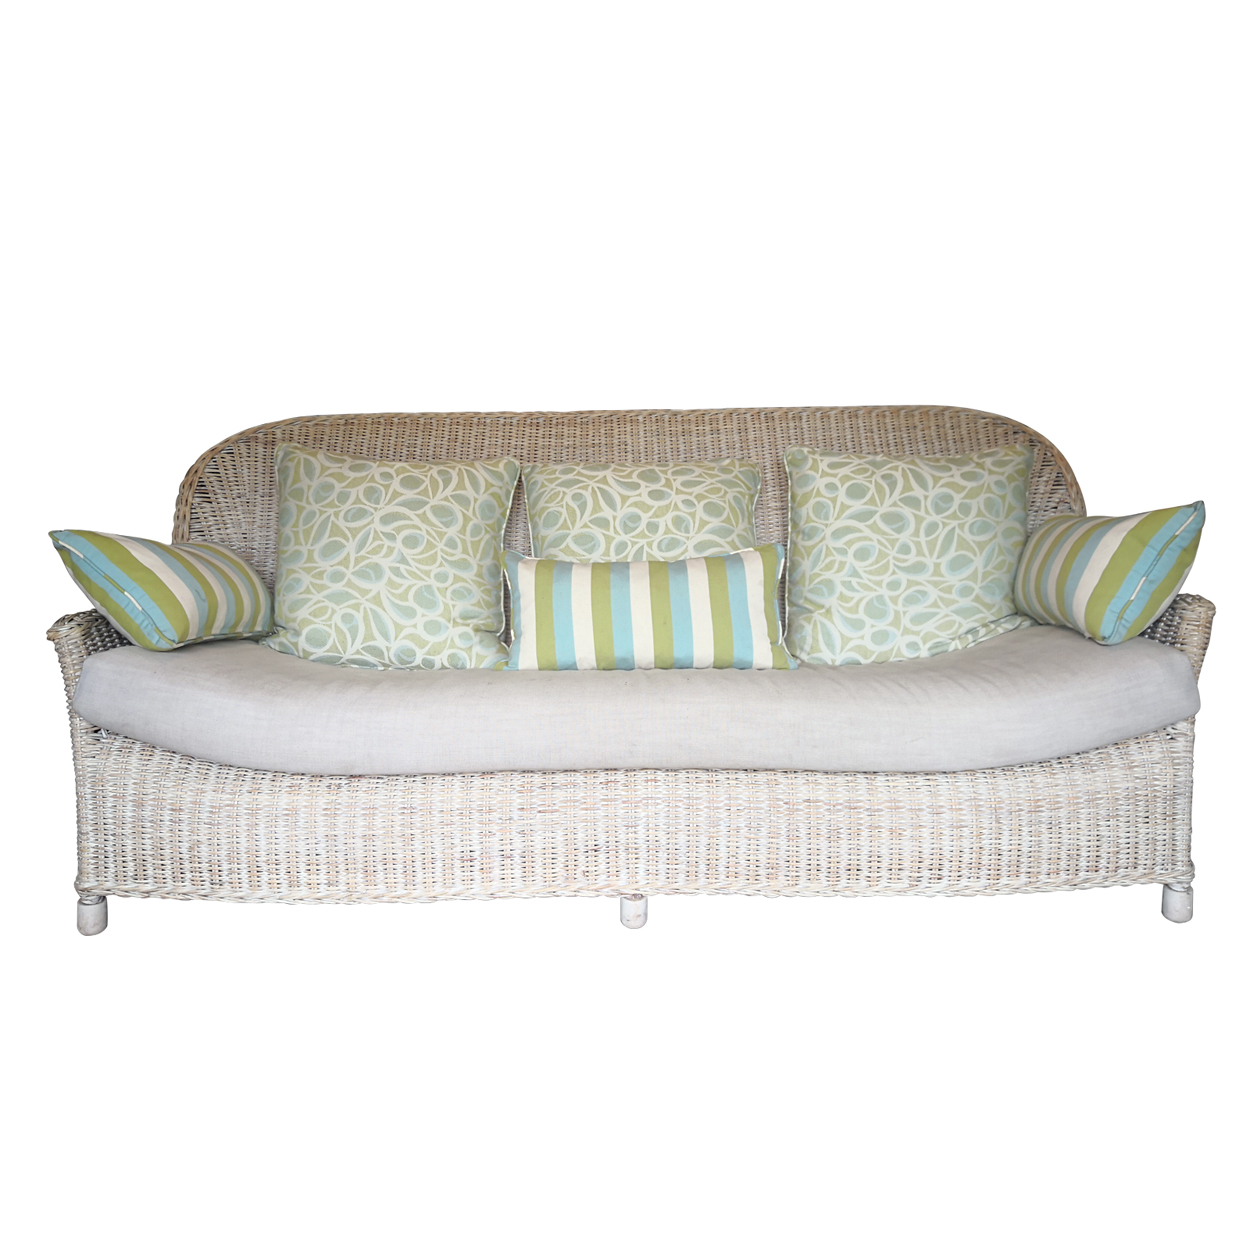 Two Design Lovers three piece cane sofa set with fabric cushions, front with cushions